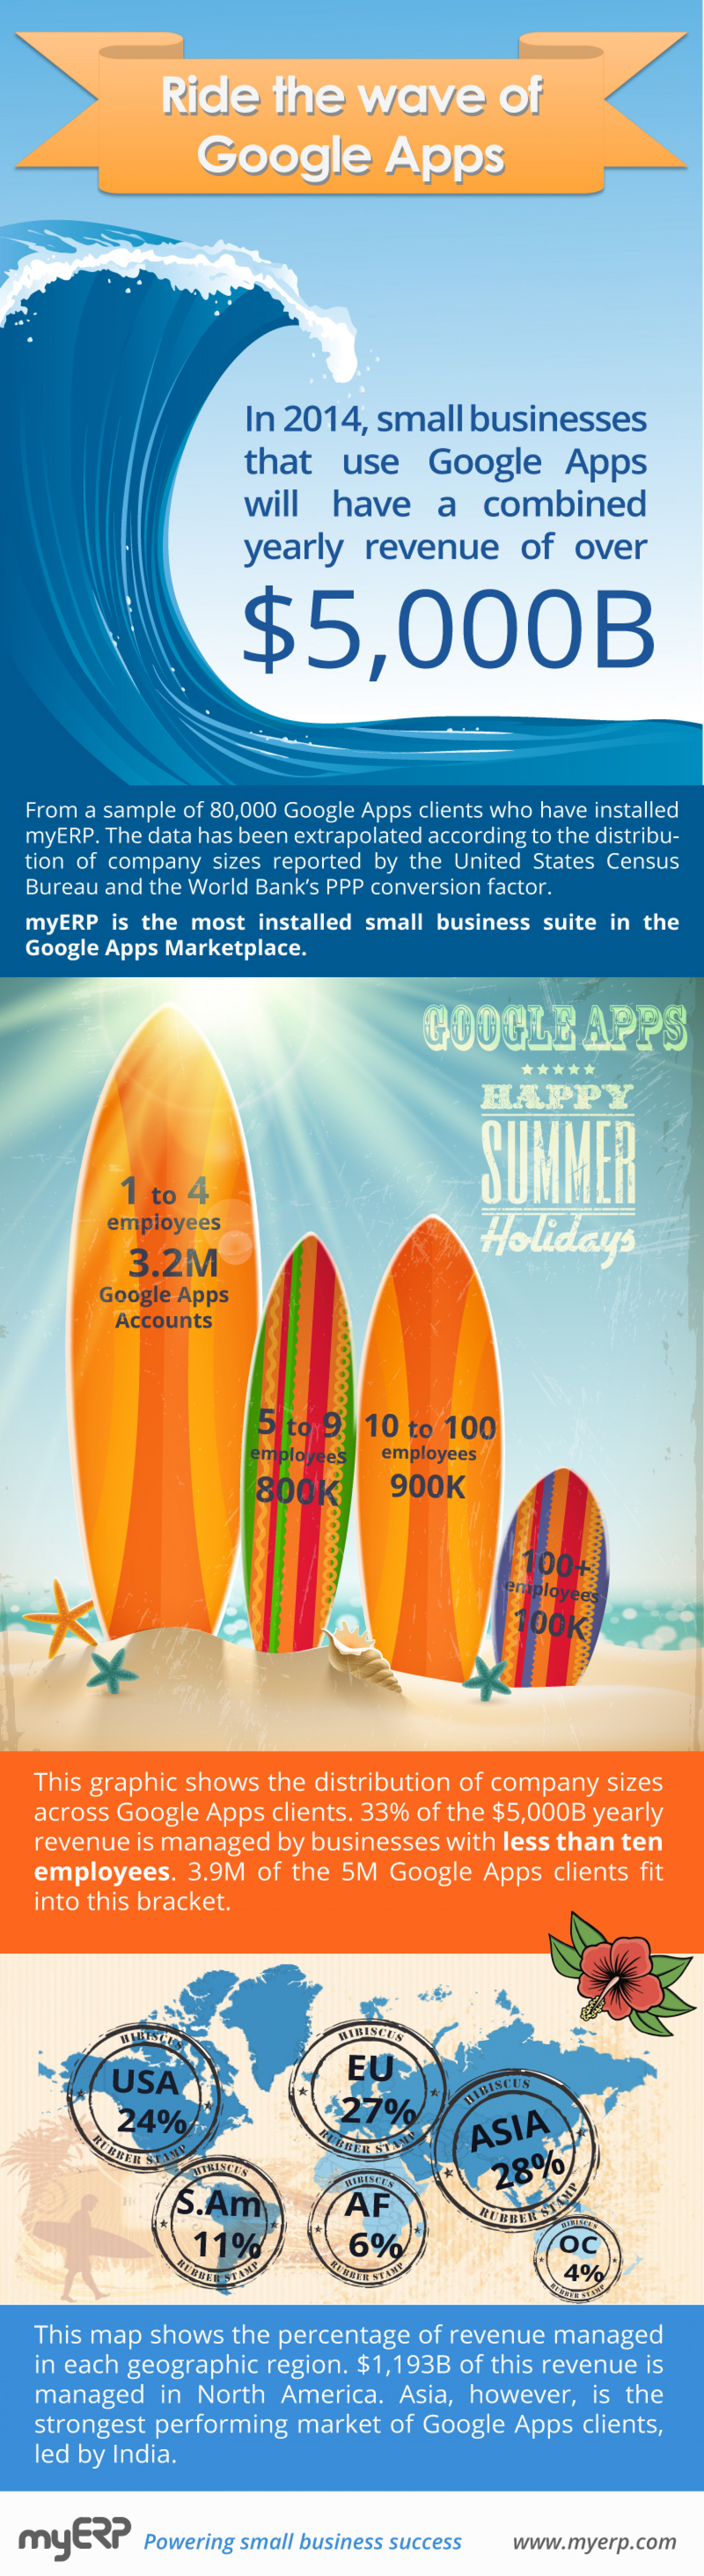 Ride the wave of Google Apps Infographic